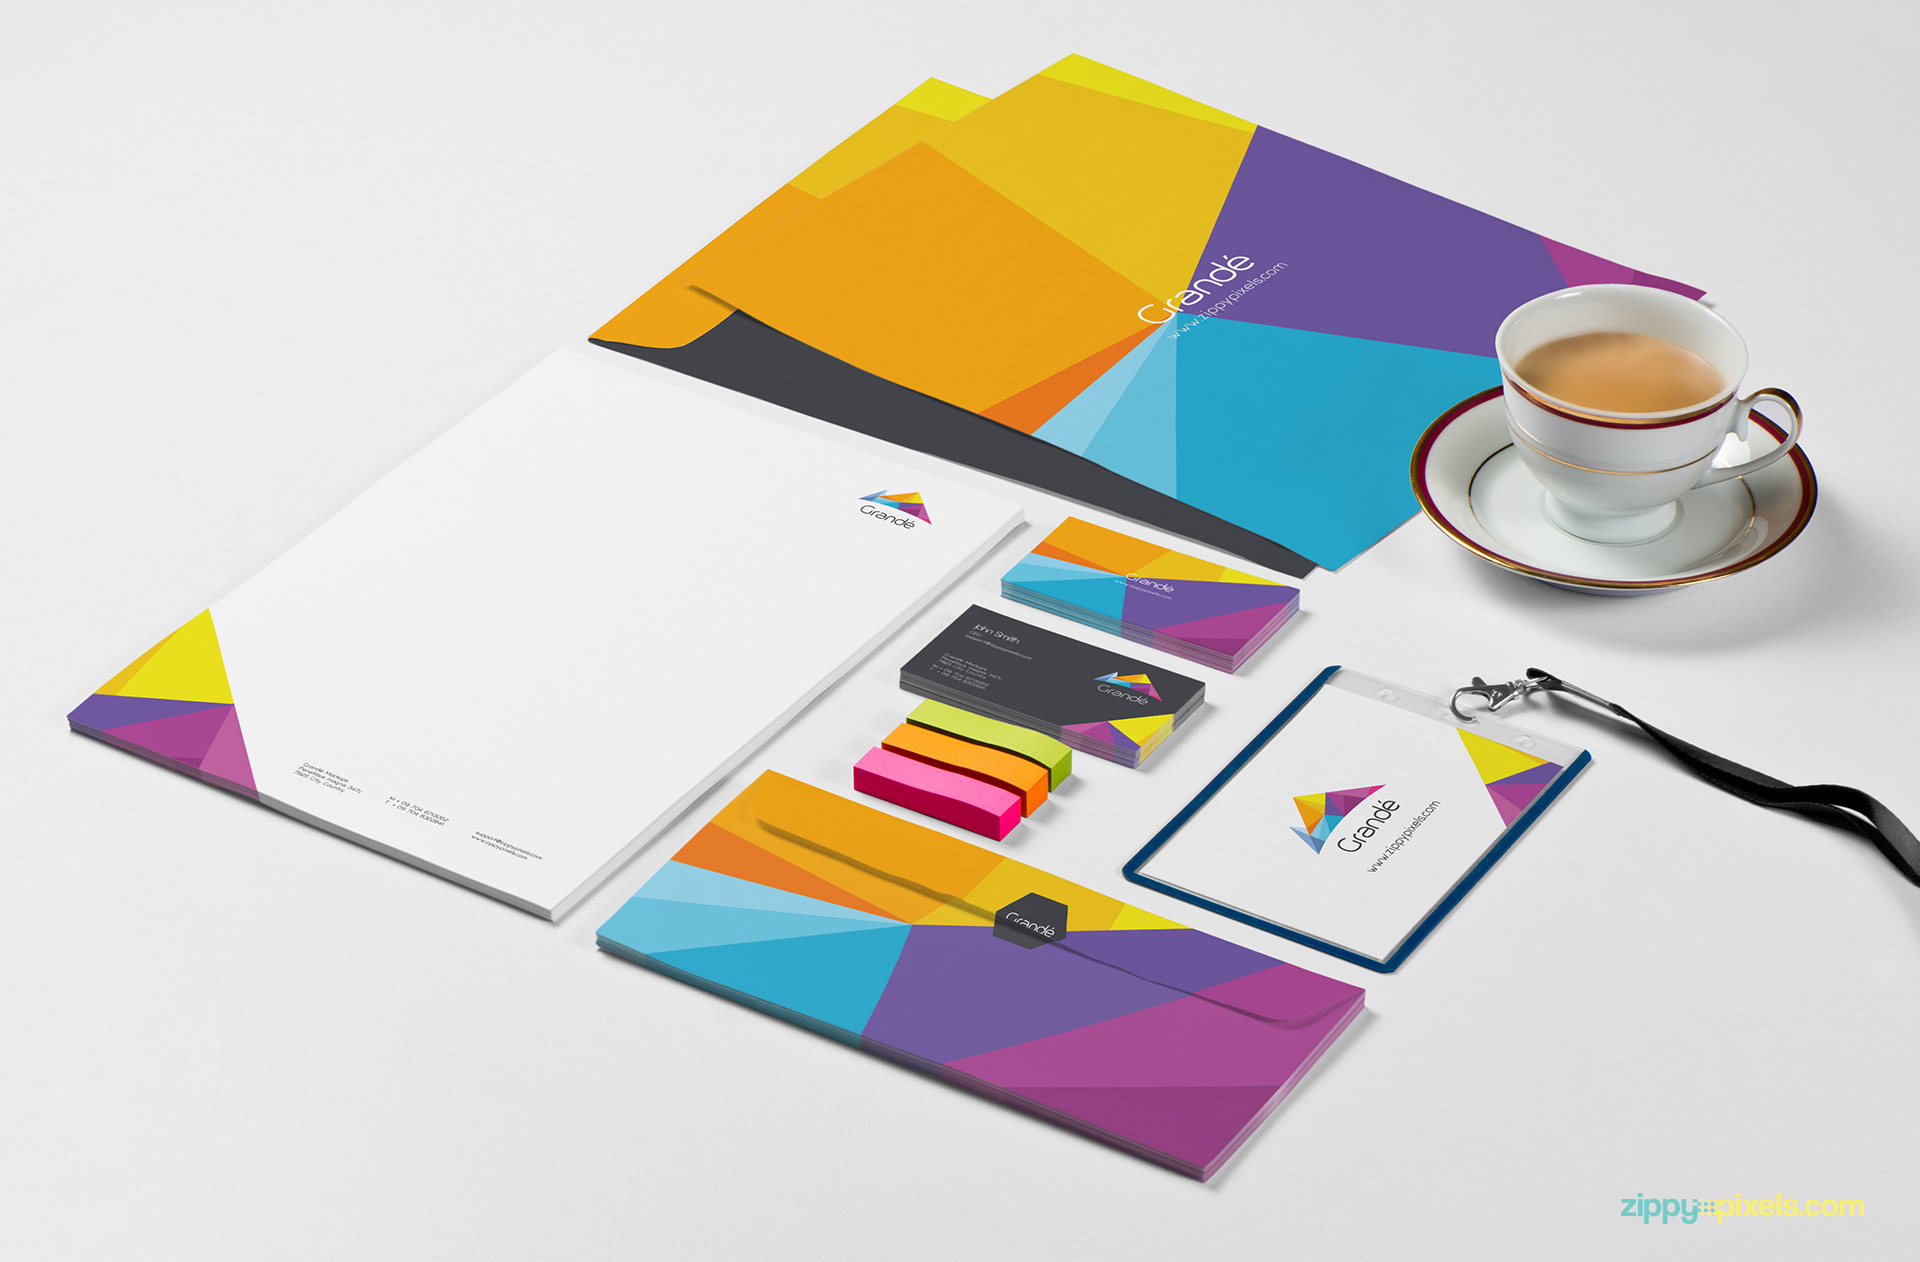 A4 Envelope, A4 Letterhead, Letter Envelope, Business Cards & ID Badge Holder Stationery Mockup for Branding